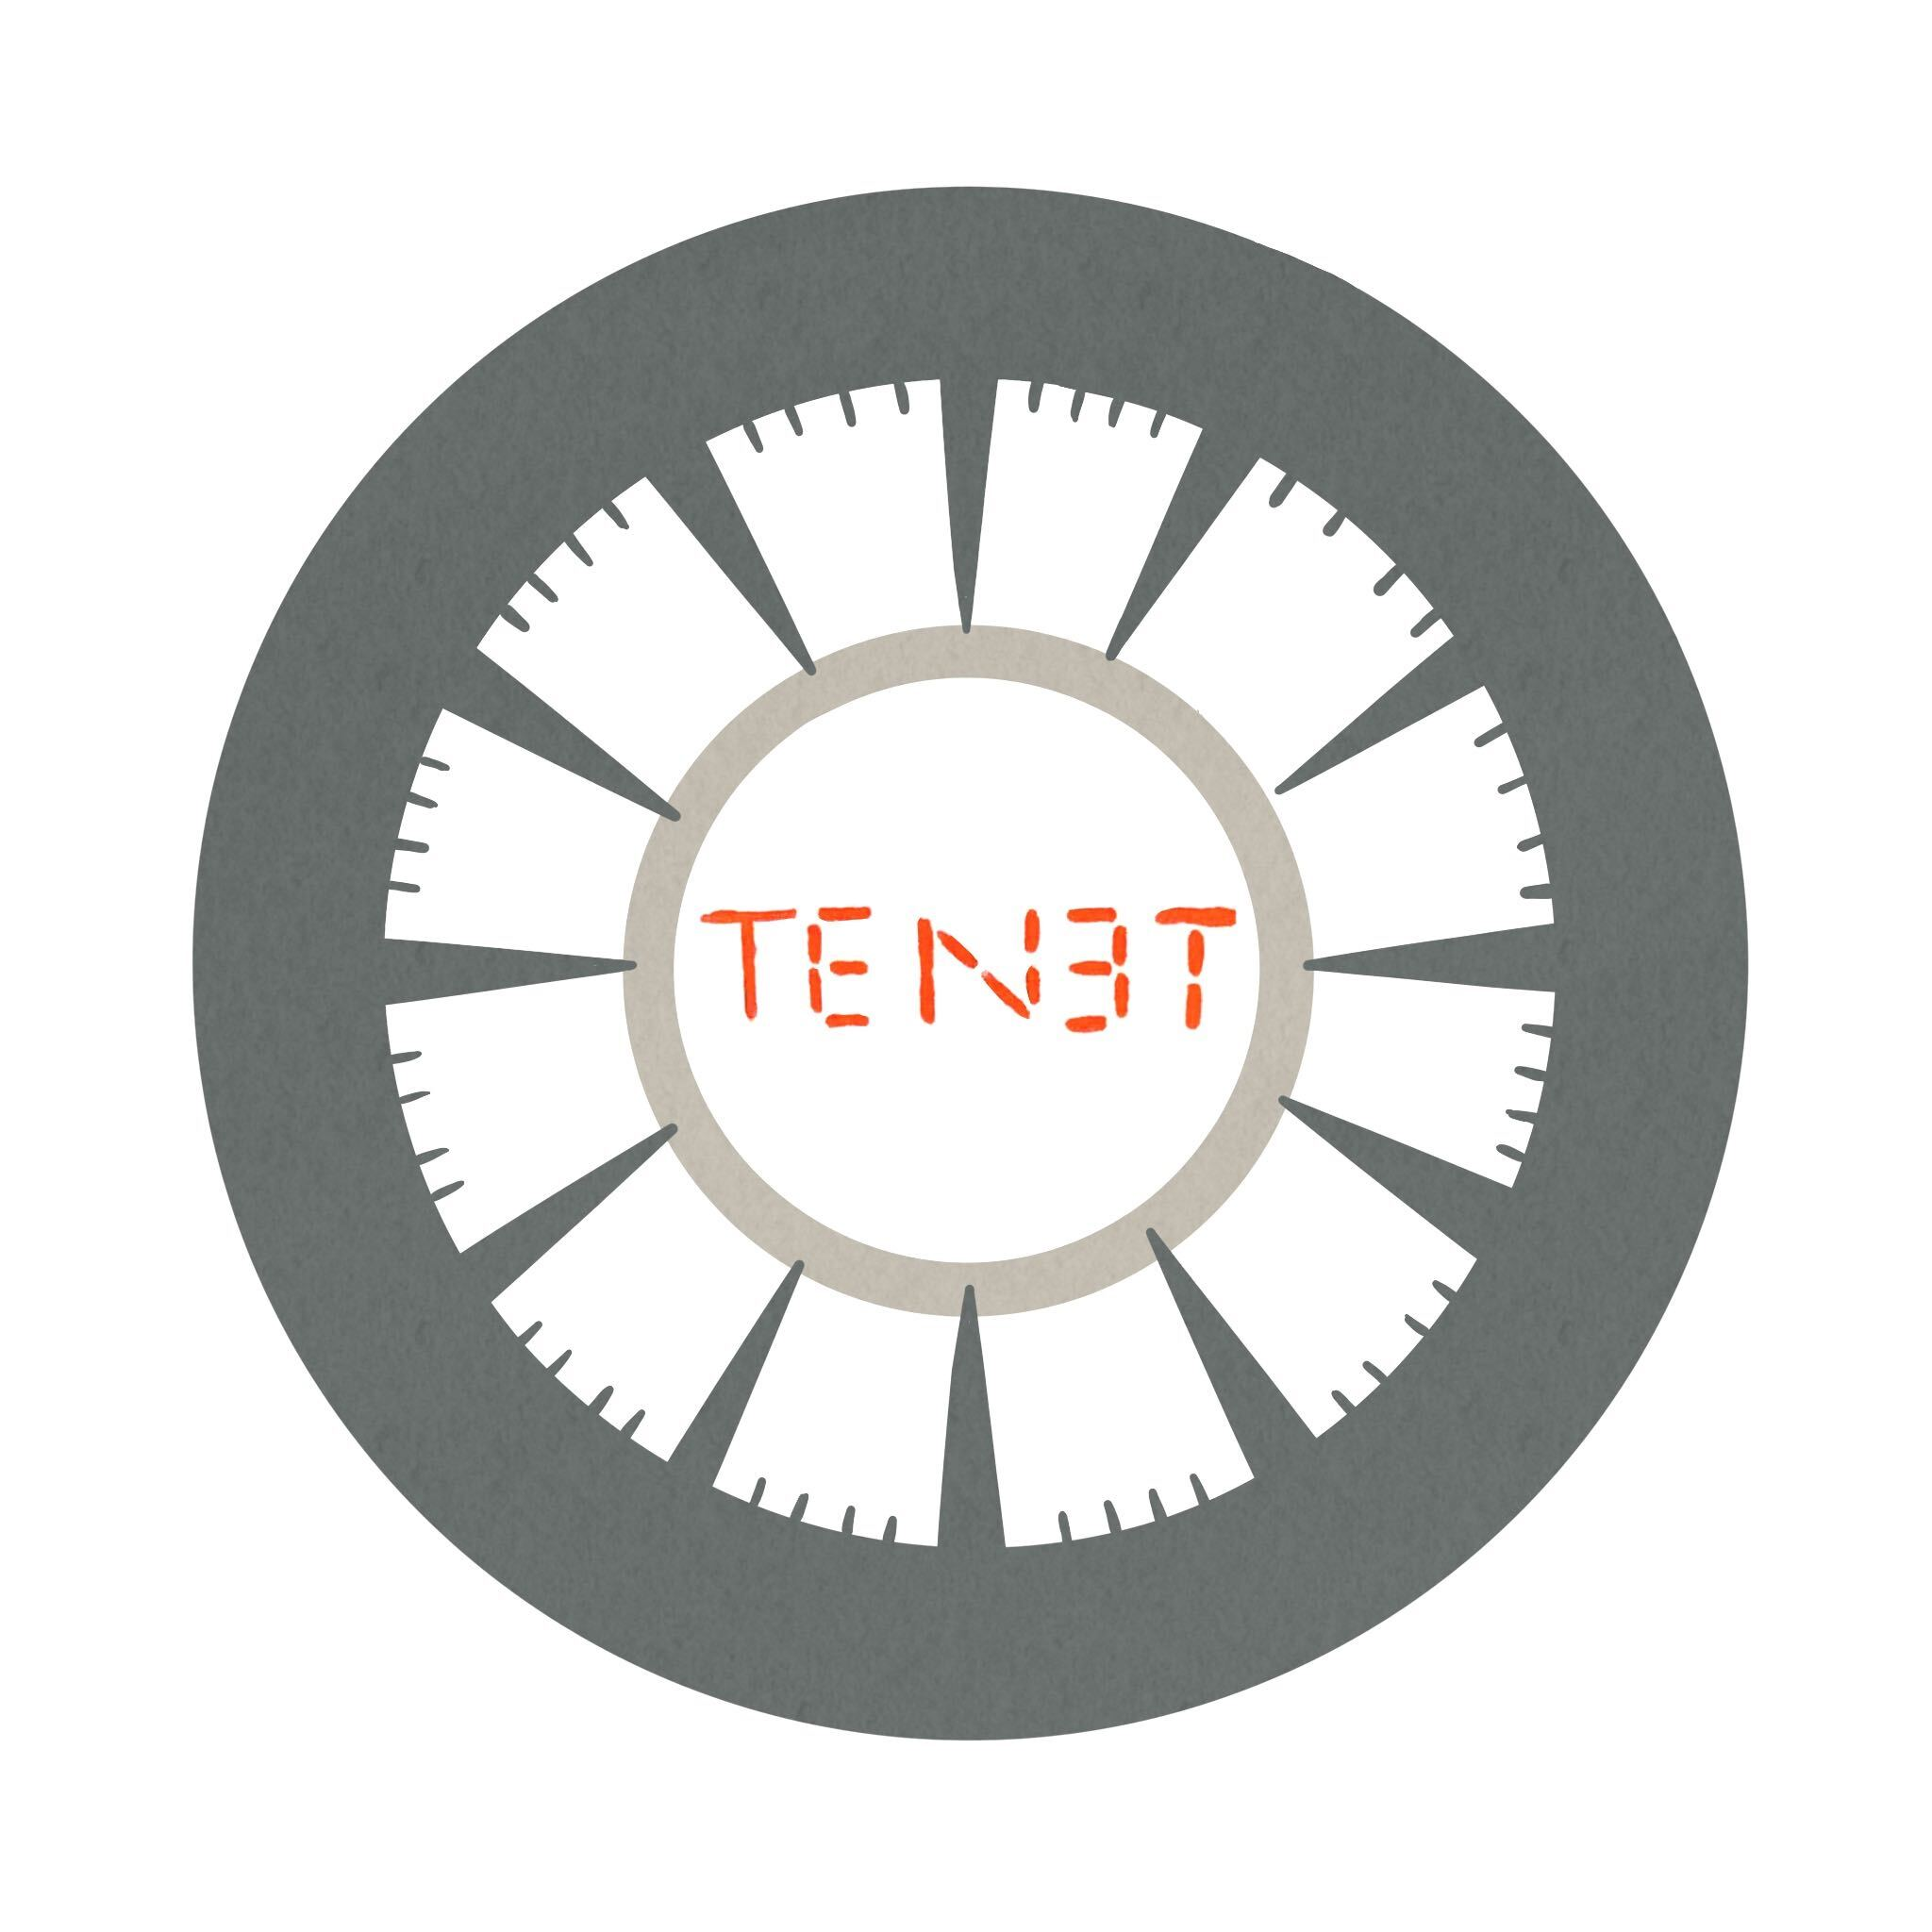 """Tenet is about a secret agent attempting to stop World War Three, but with a Christopher Nolan movie, we always have to ask, """"Is it really about anything?"""" (credit: Julie Lee/Art Editor)"""